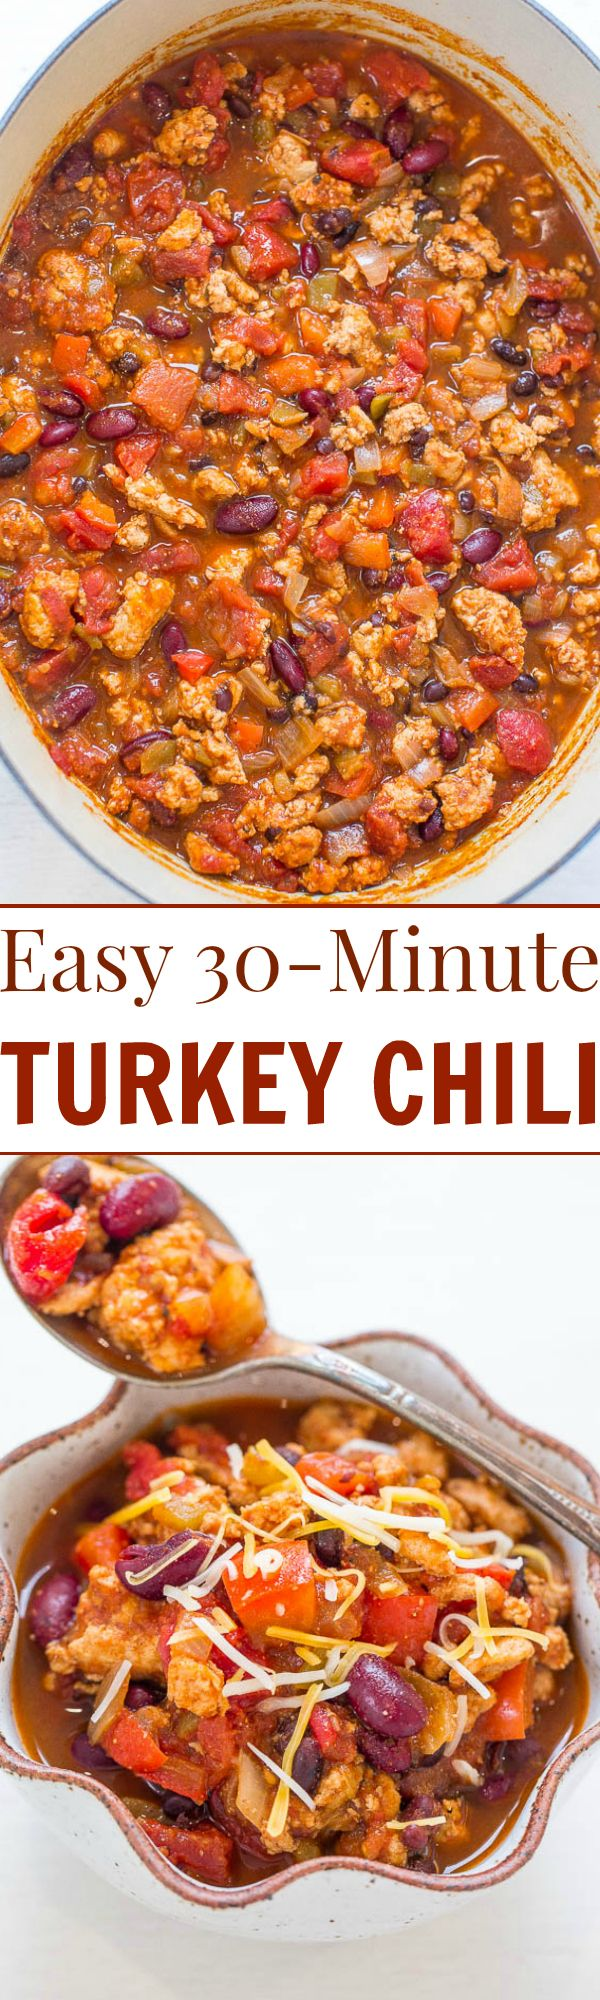 Easy 30-Minute Turkey Chili - Don't have all day for chili to simmer? No problem! This EASY, hearty, healthy chili is ready in 30 minutes and it's full of FLAVOR!! Perfect for busy weeknights!!